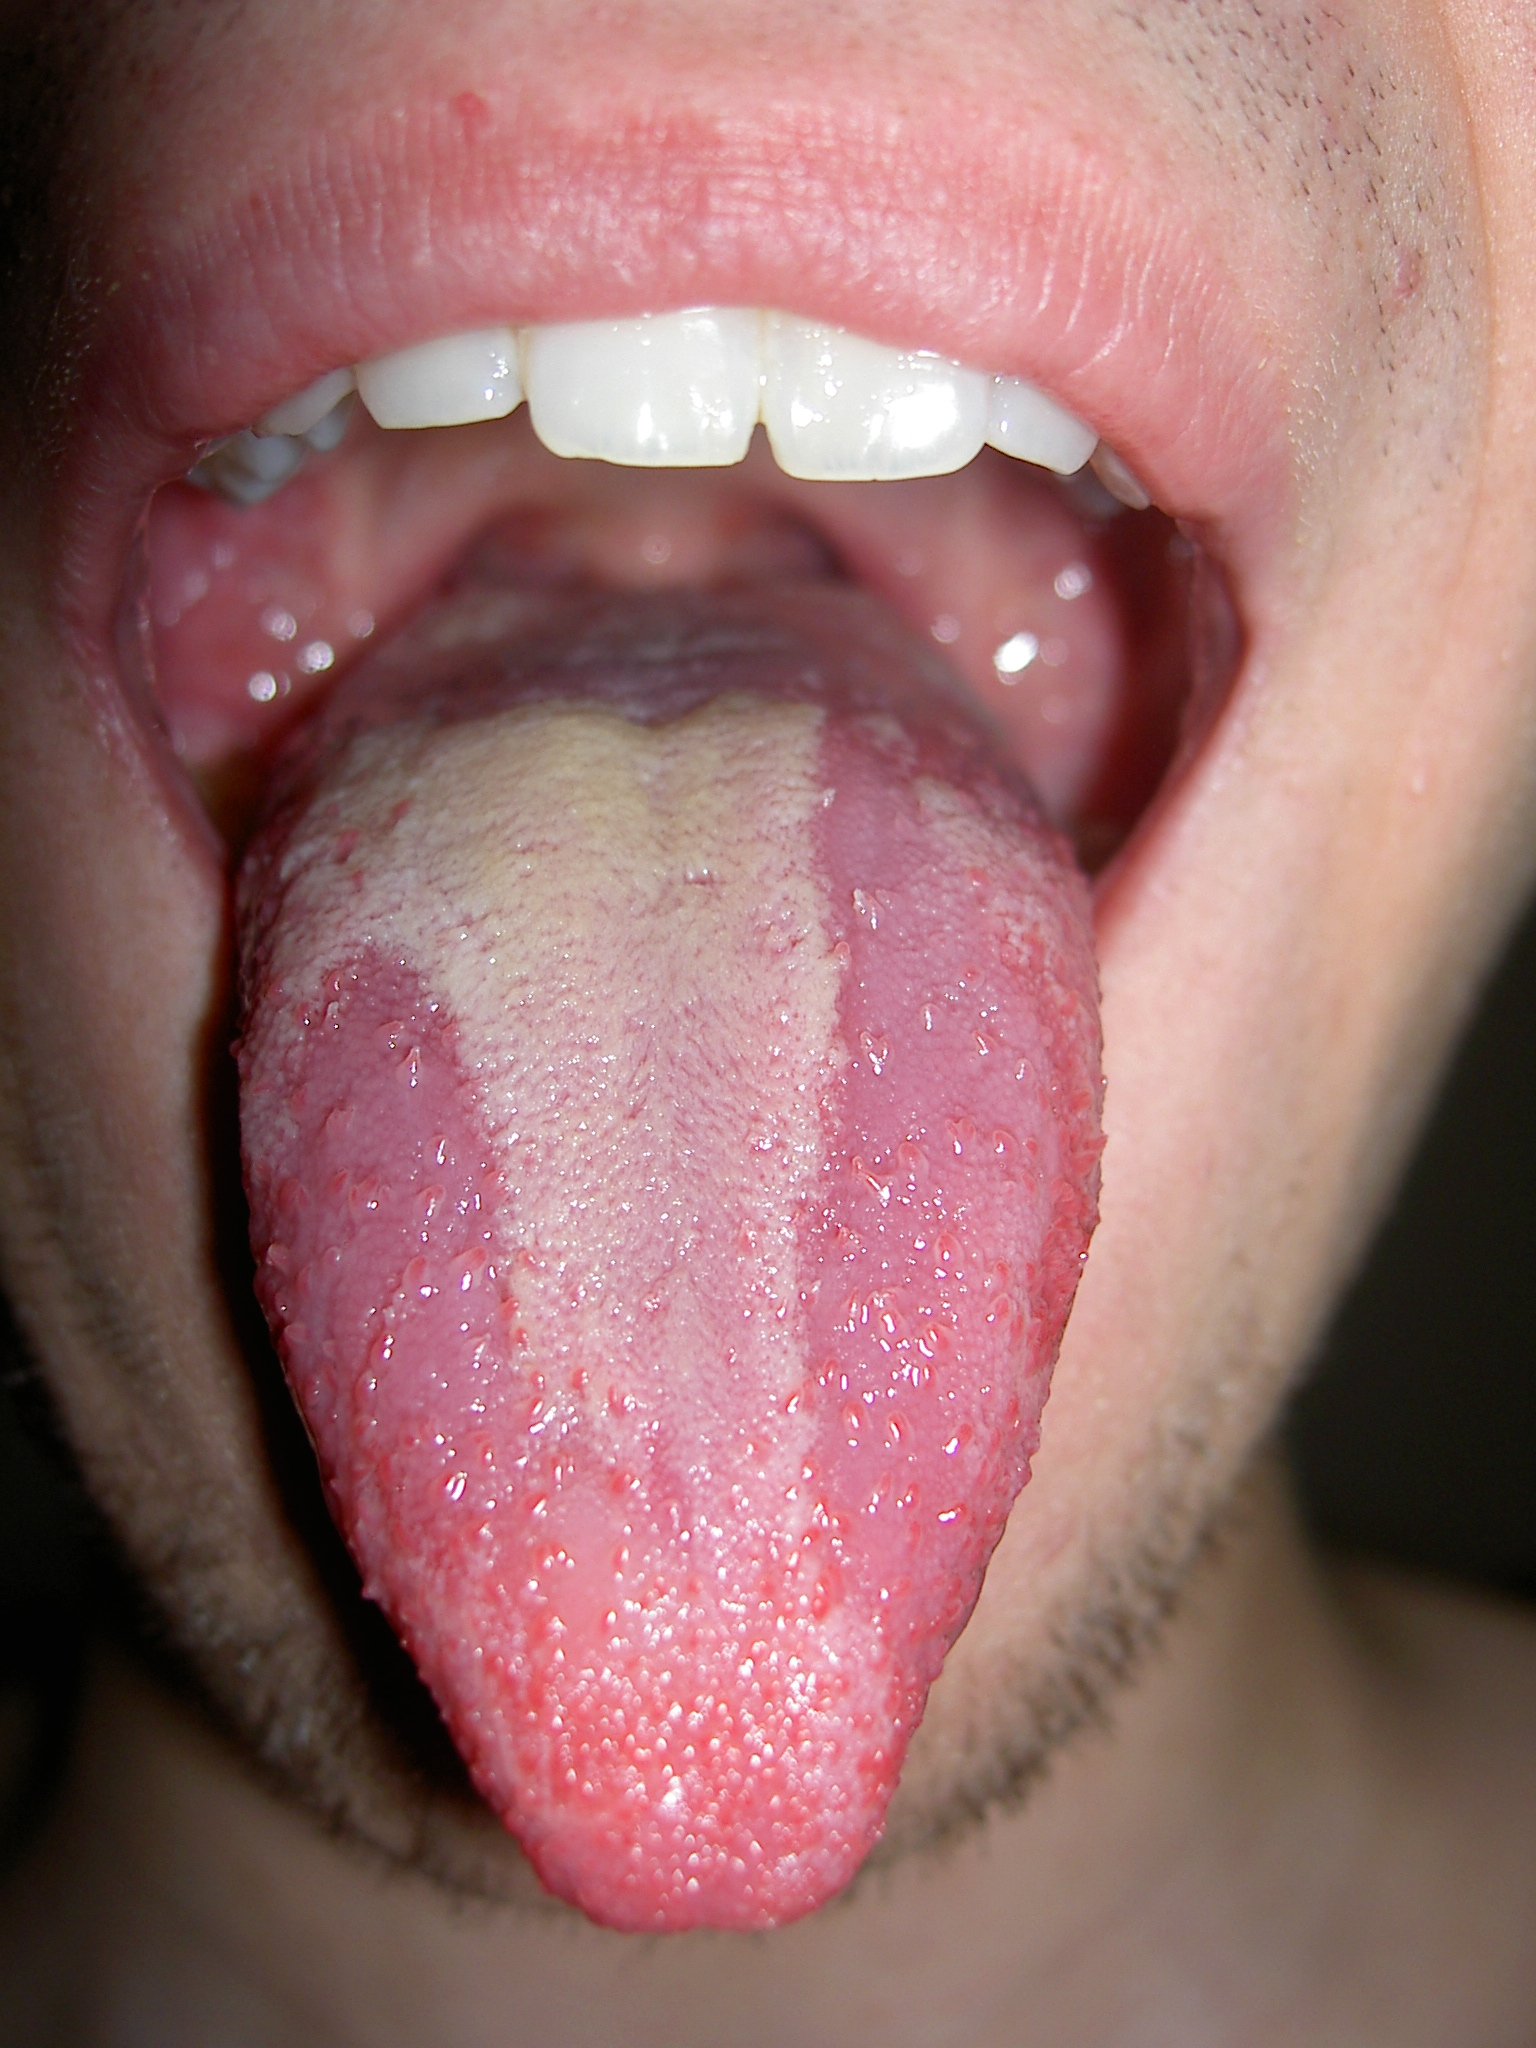 Ask Your Dentist 23 Fungal Infection Of The Tongue